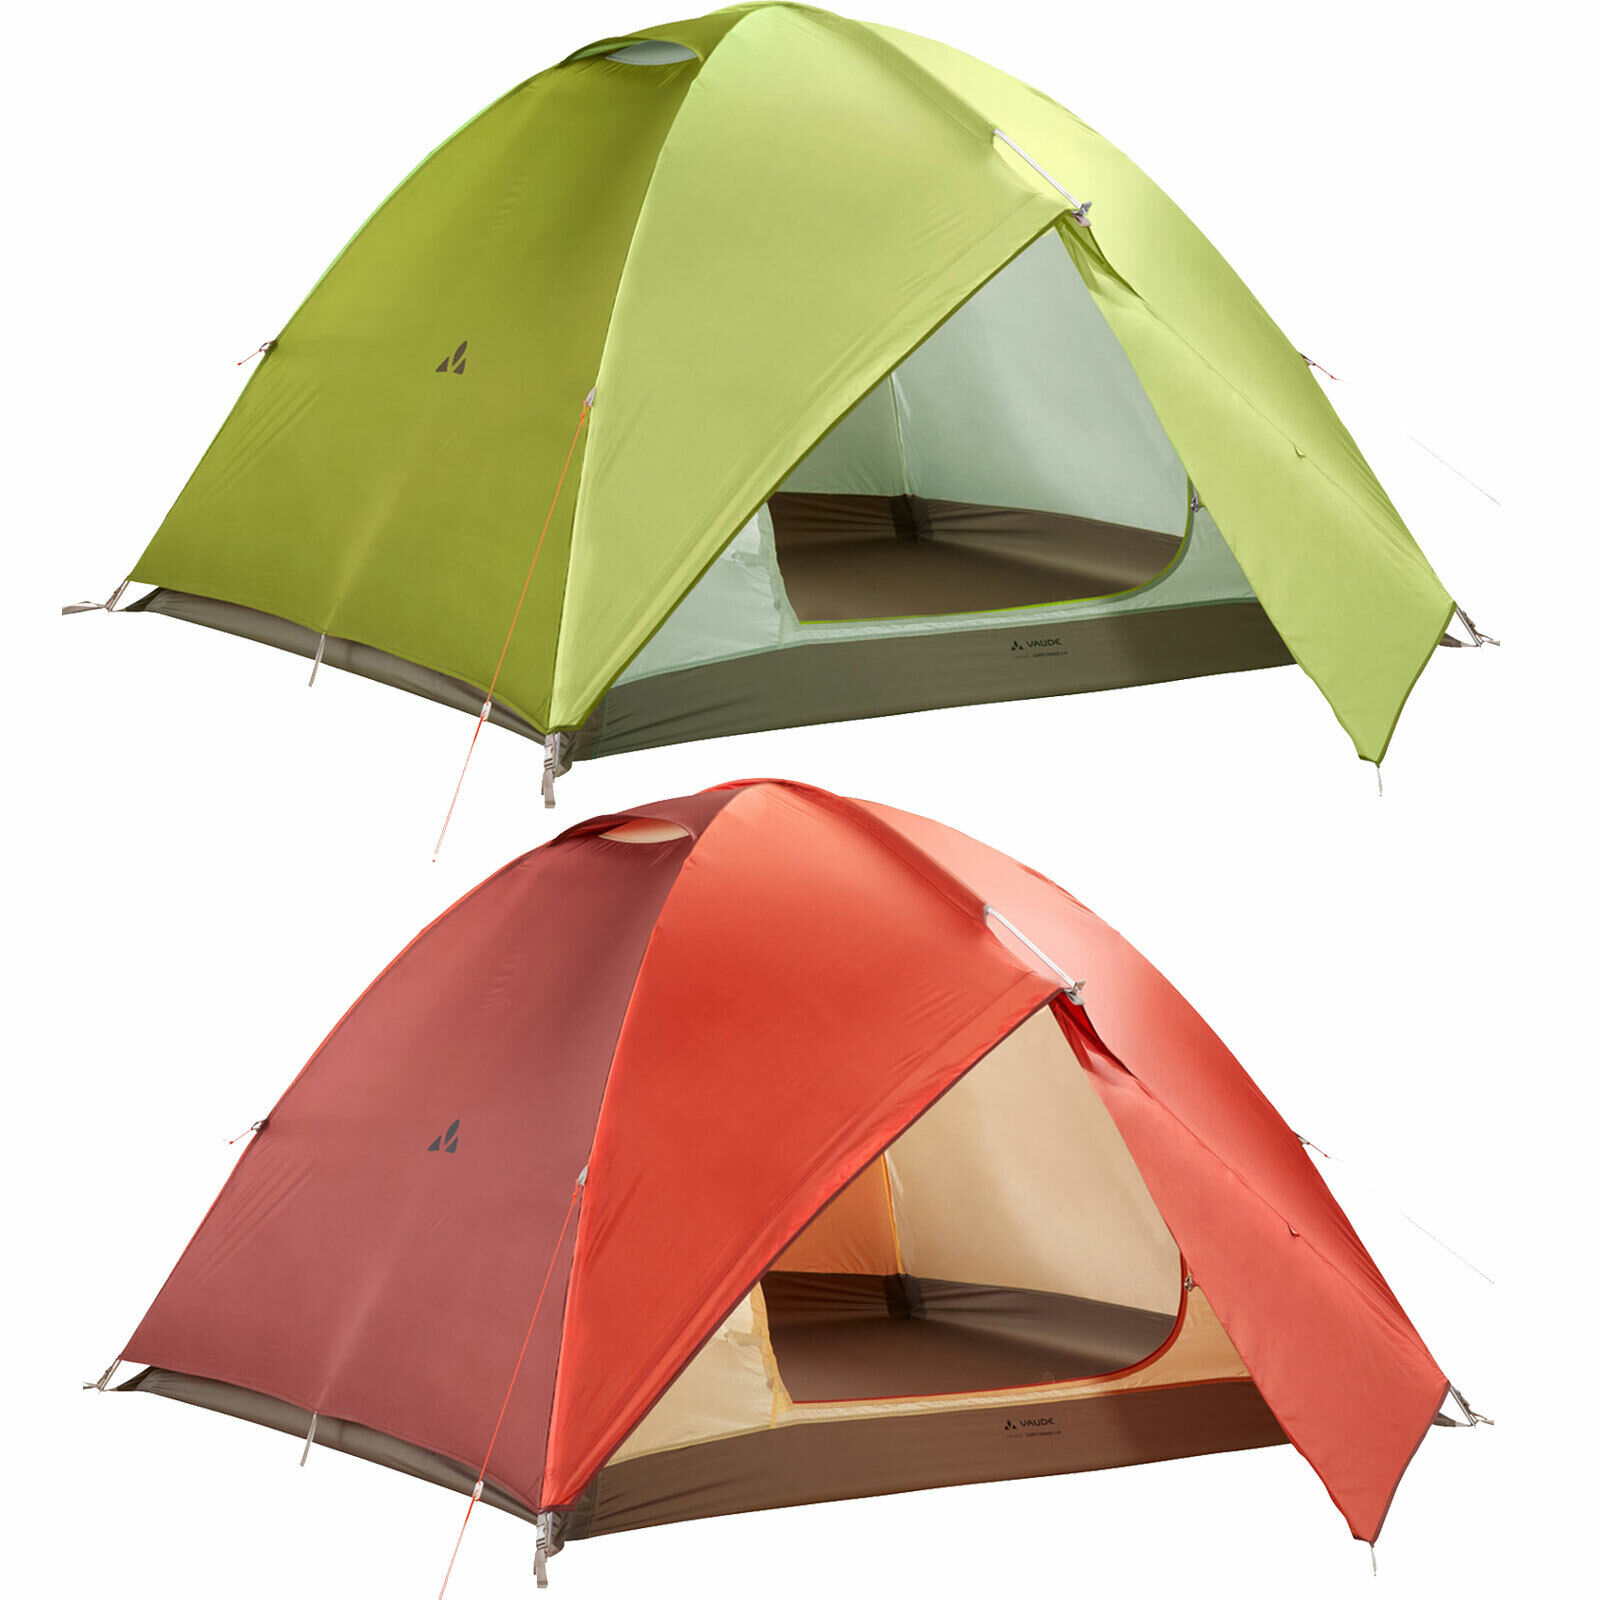 Vaude Campo  Grande Tent 3-4 Person Dome Tent Family Tent Large Tent Outdoor  low 40% price